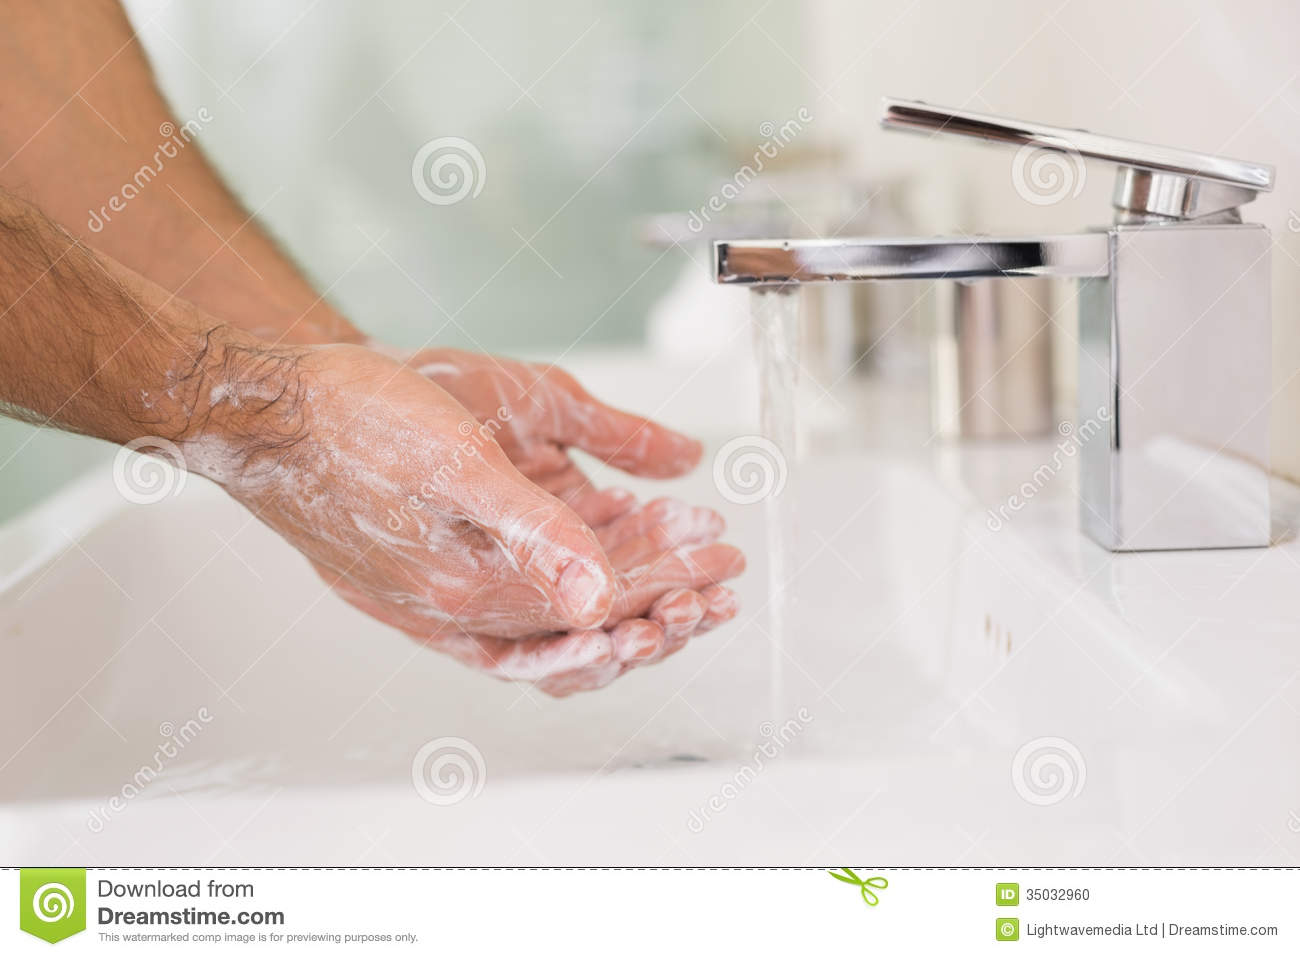 Washing Hands With Soap Under Running Water At Bathroom Sink Stock ...